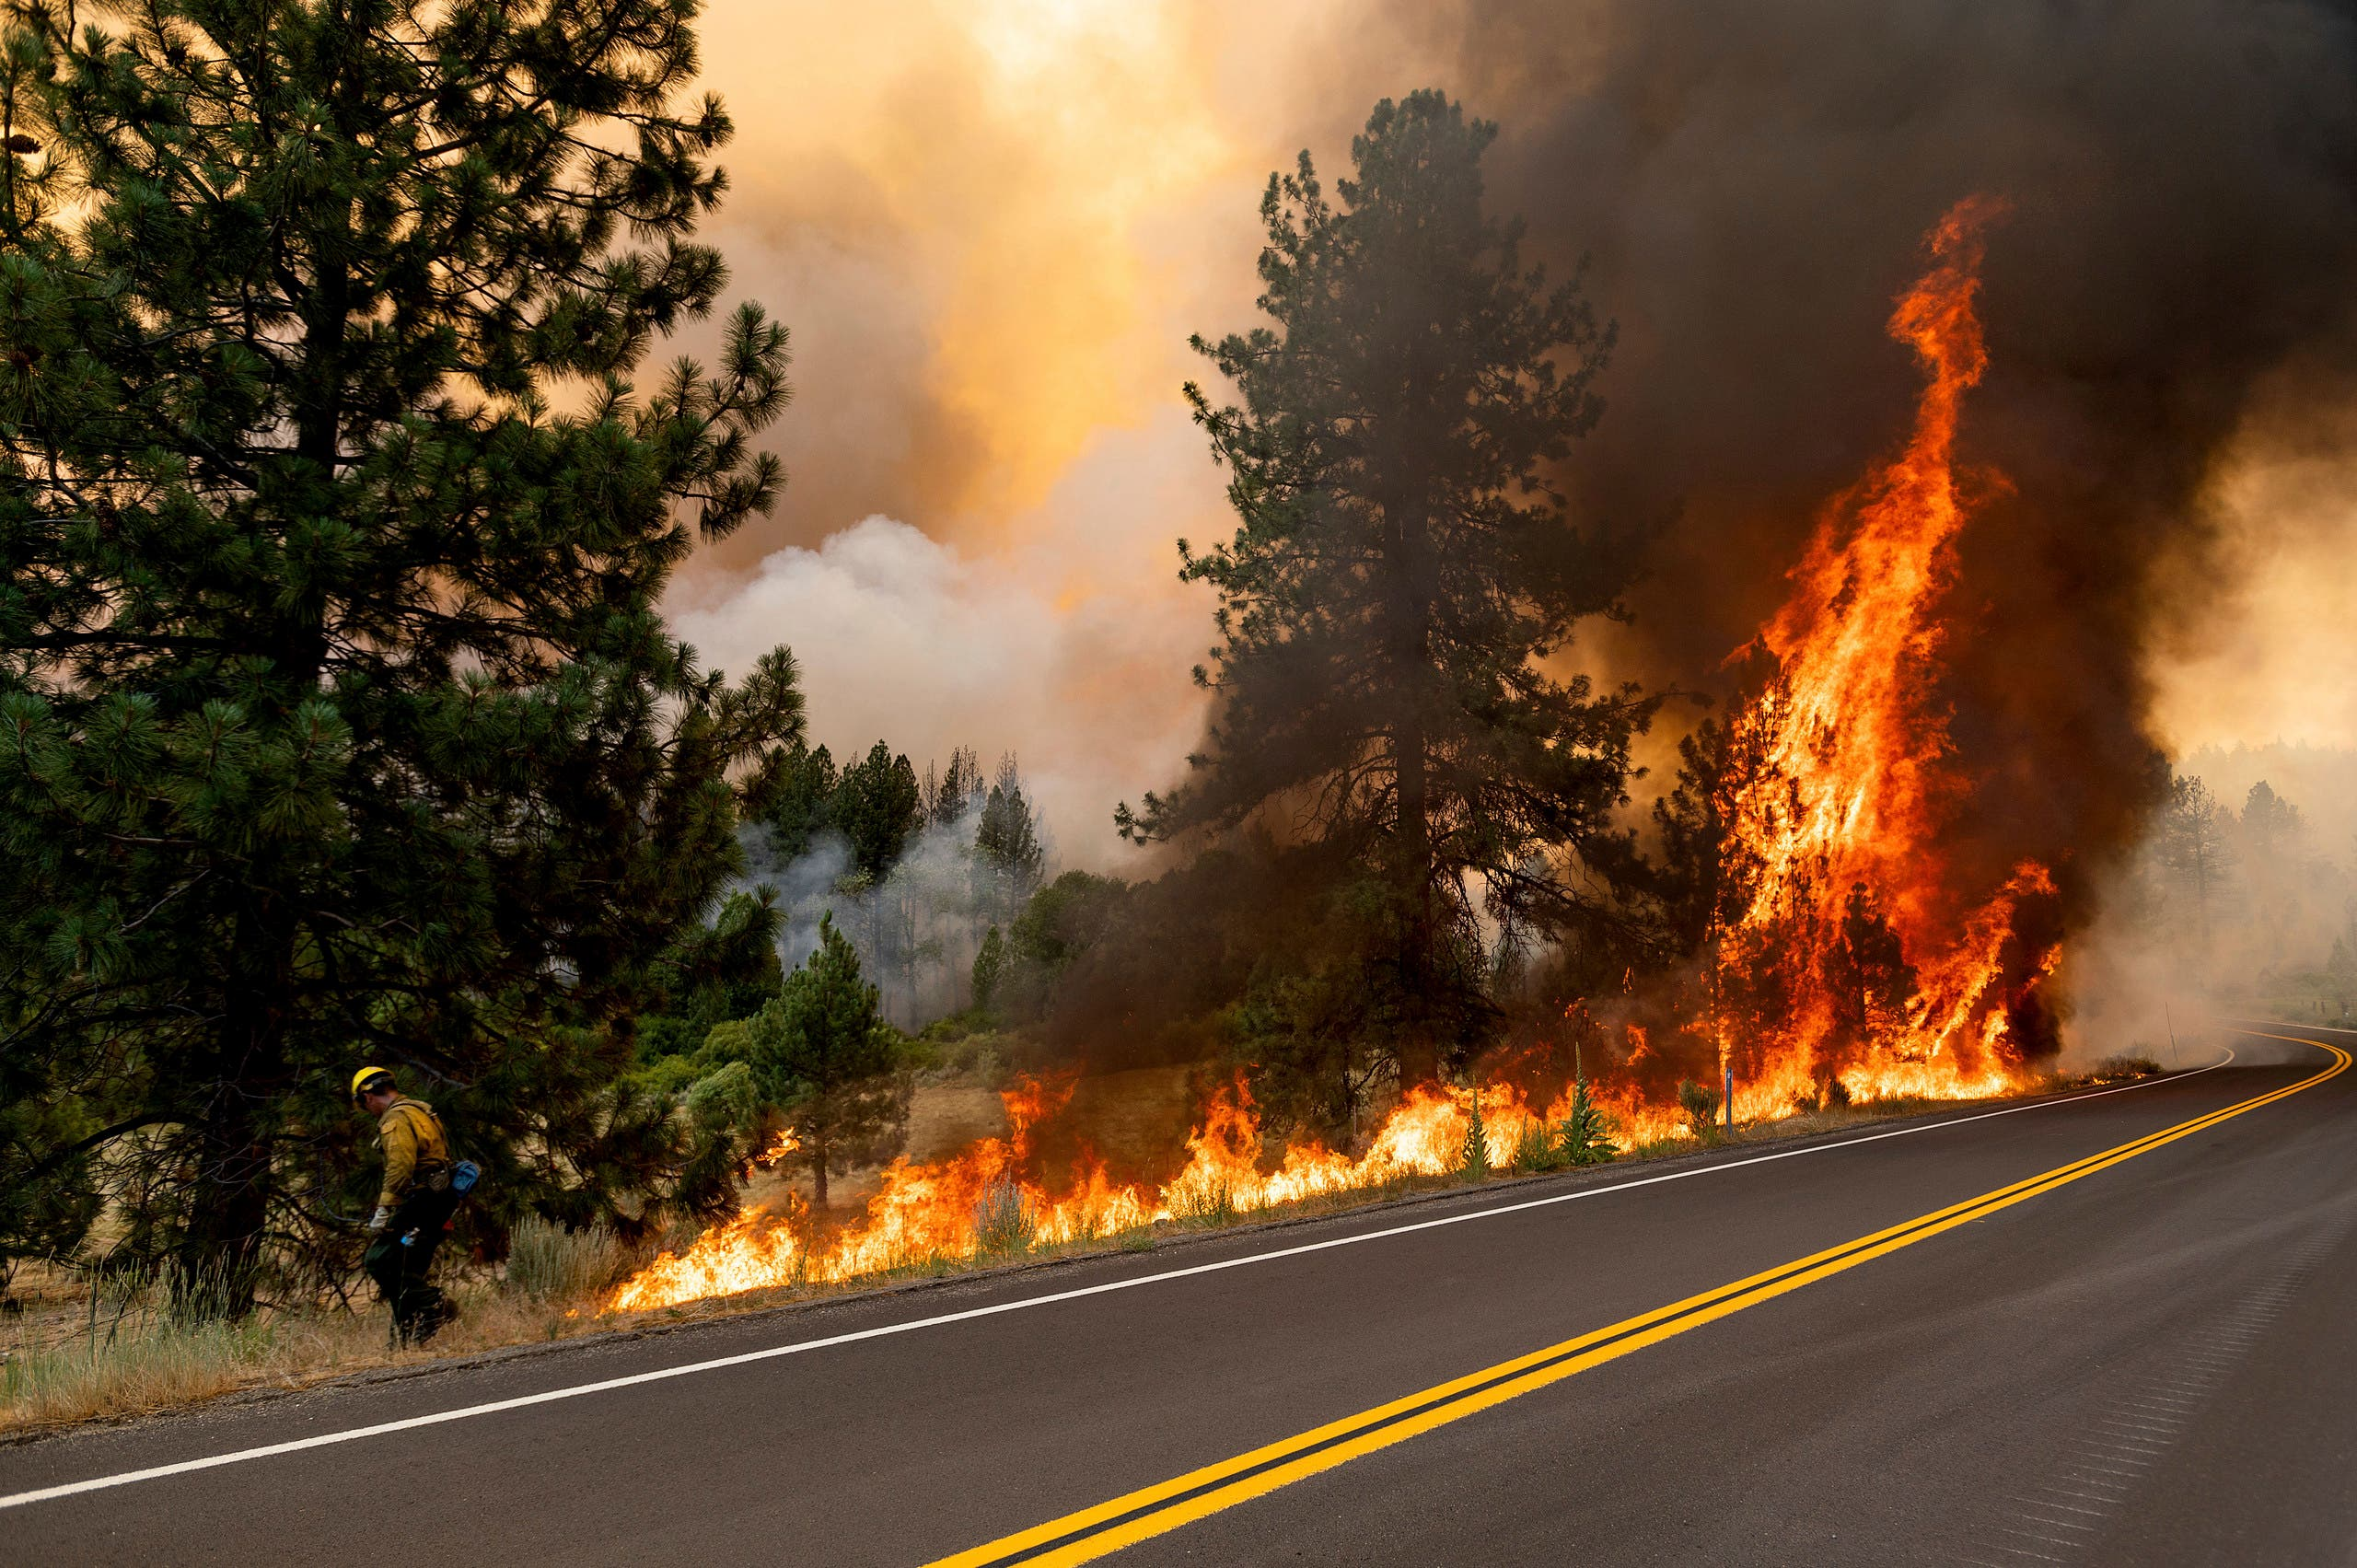 A firefighter burns vegetation while trying to stop the Sugar Fire, part of the Beckwourth Complex Fire, from spreading in Plumas National Forest, California, on Friday, July 9, 2021. (AP)